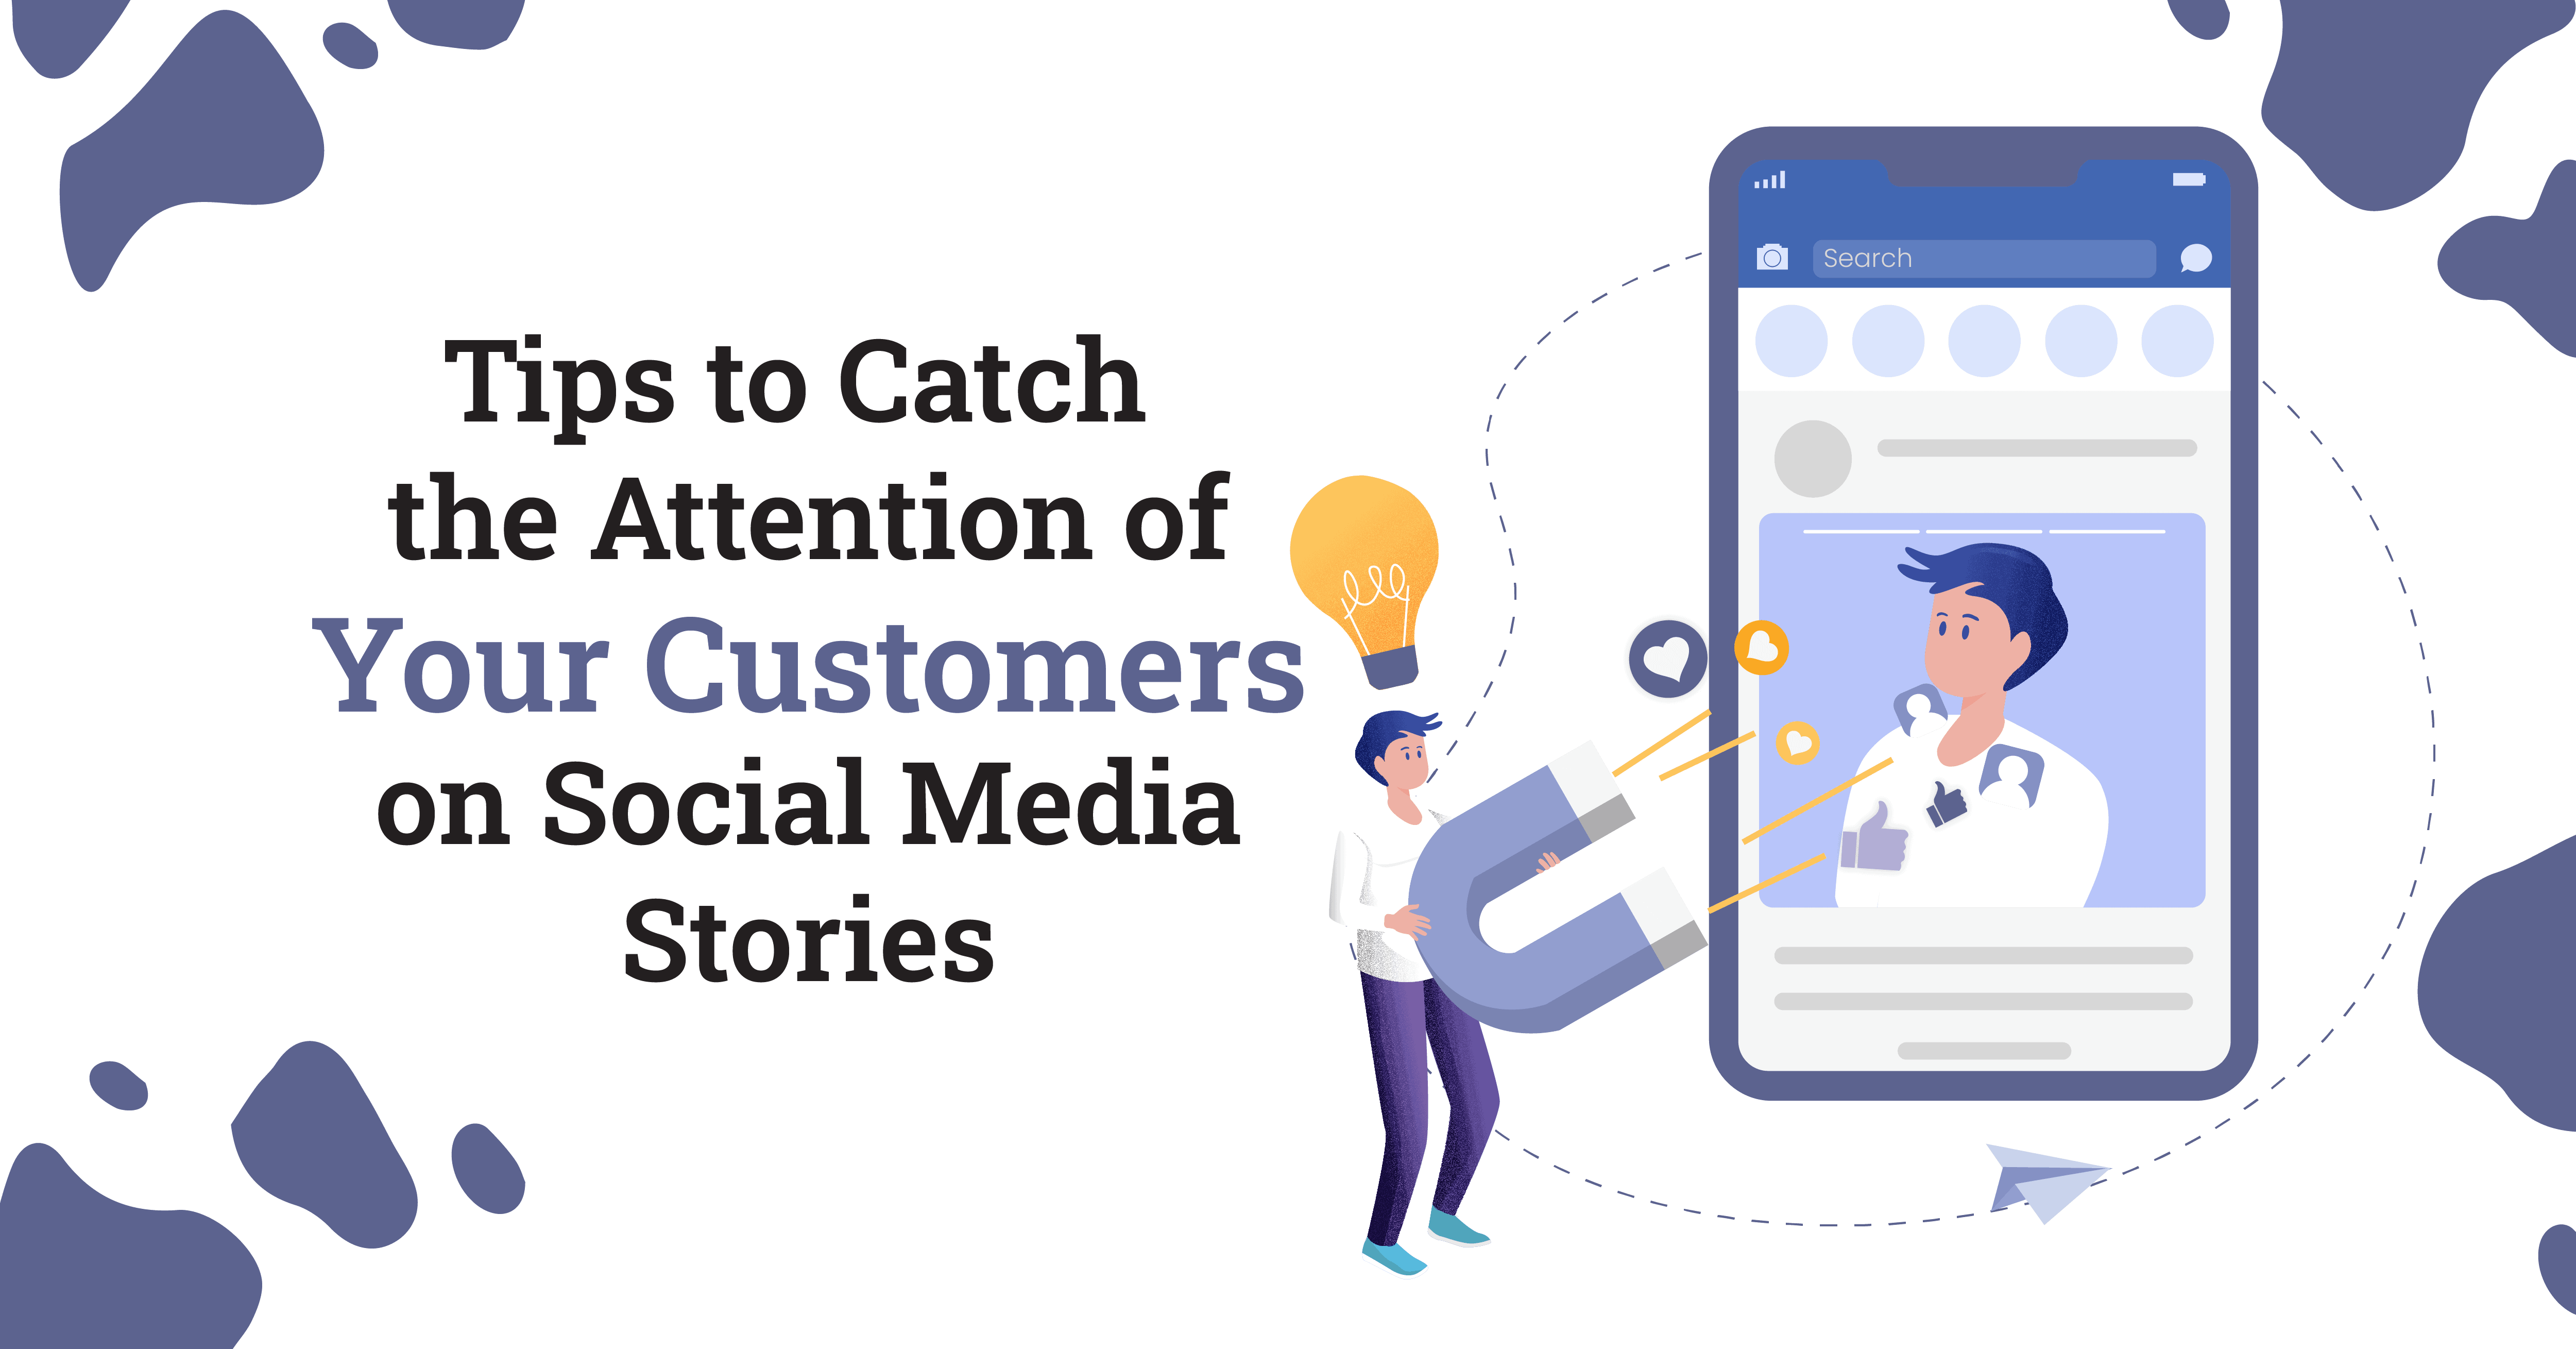 Tips to Catch the Attention of Your Customers on Social Media Stories